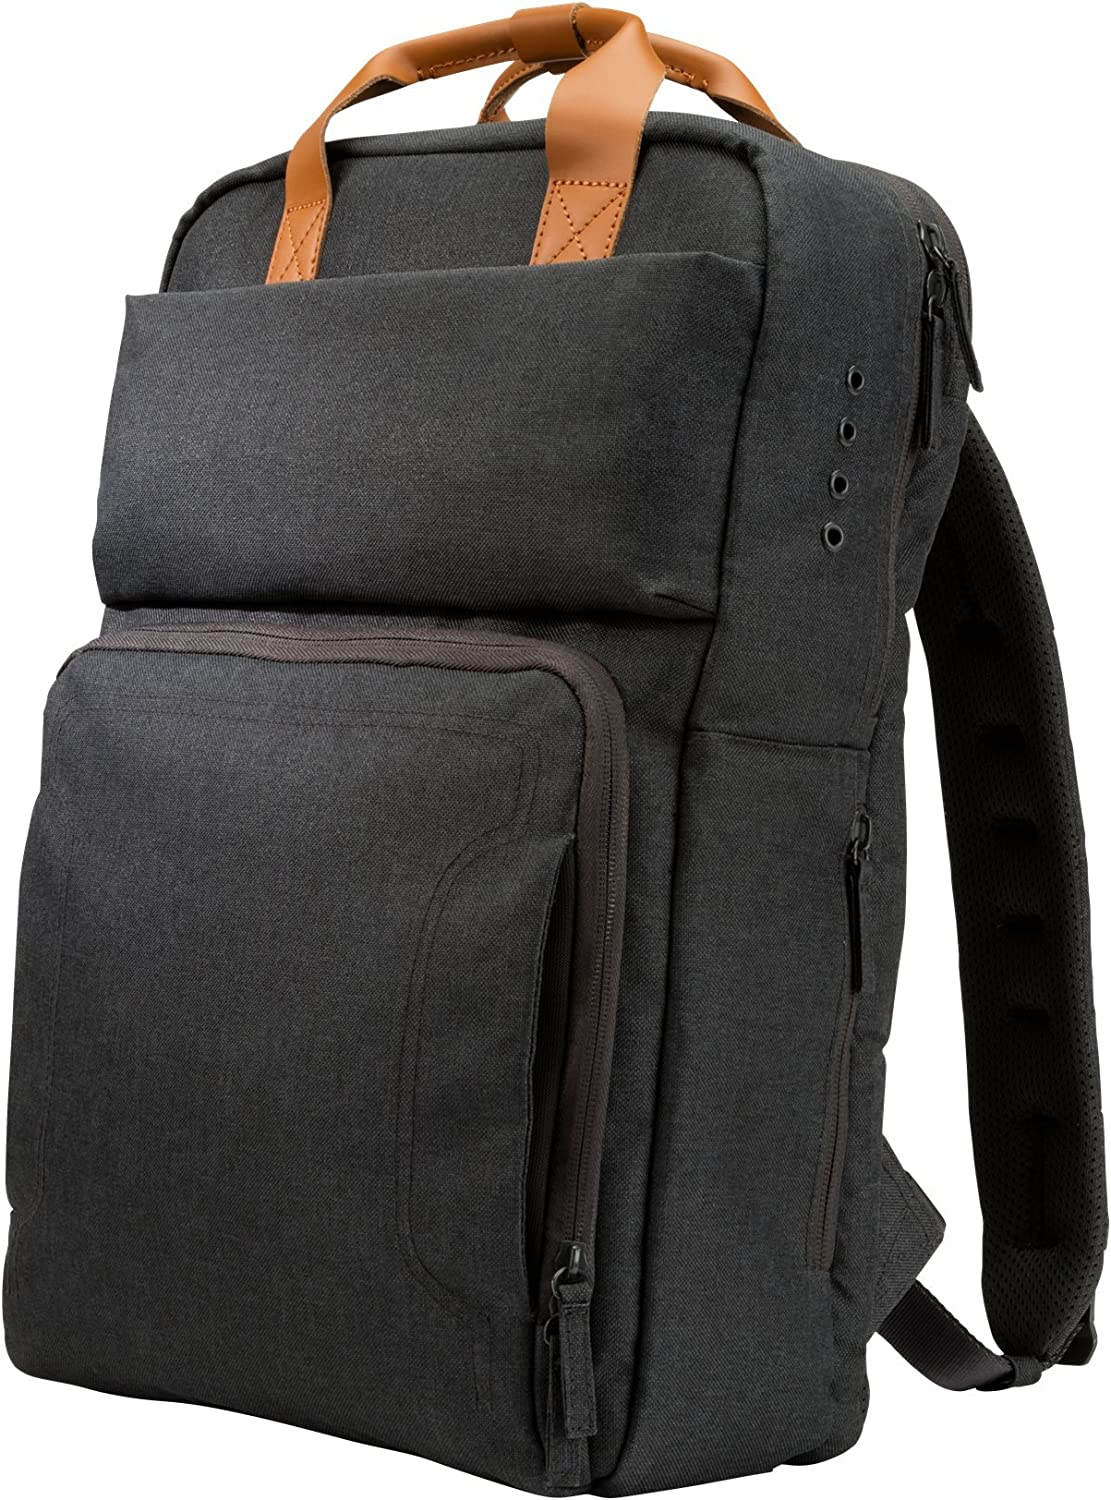 "HP PowerUP - Notebook Carrying Backpack - 17.3"" - Brown, Gray"